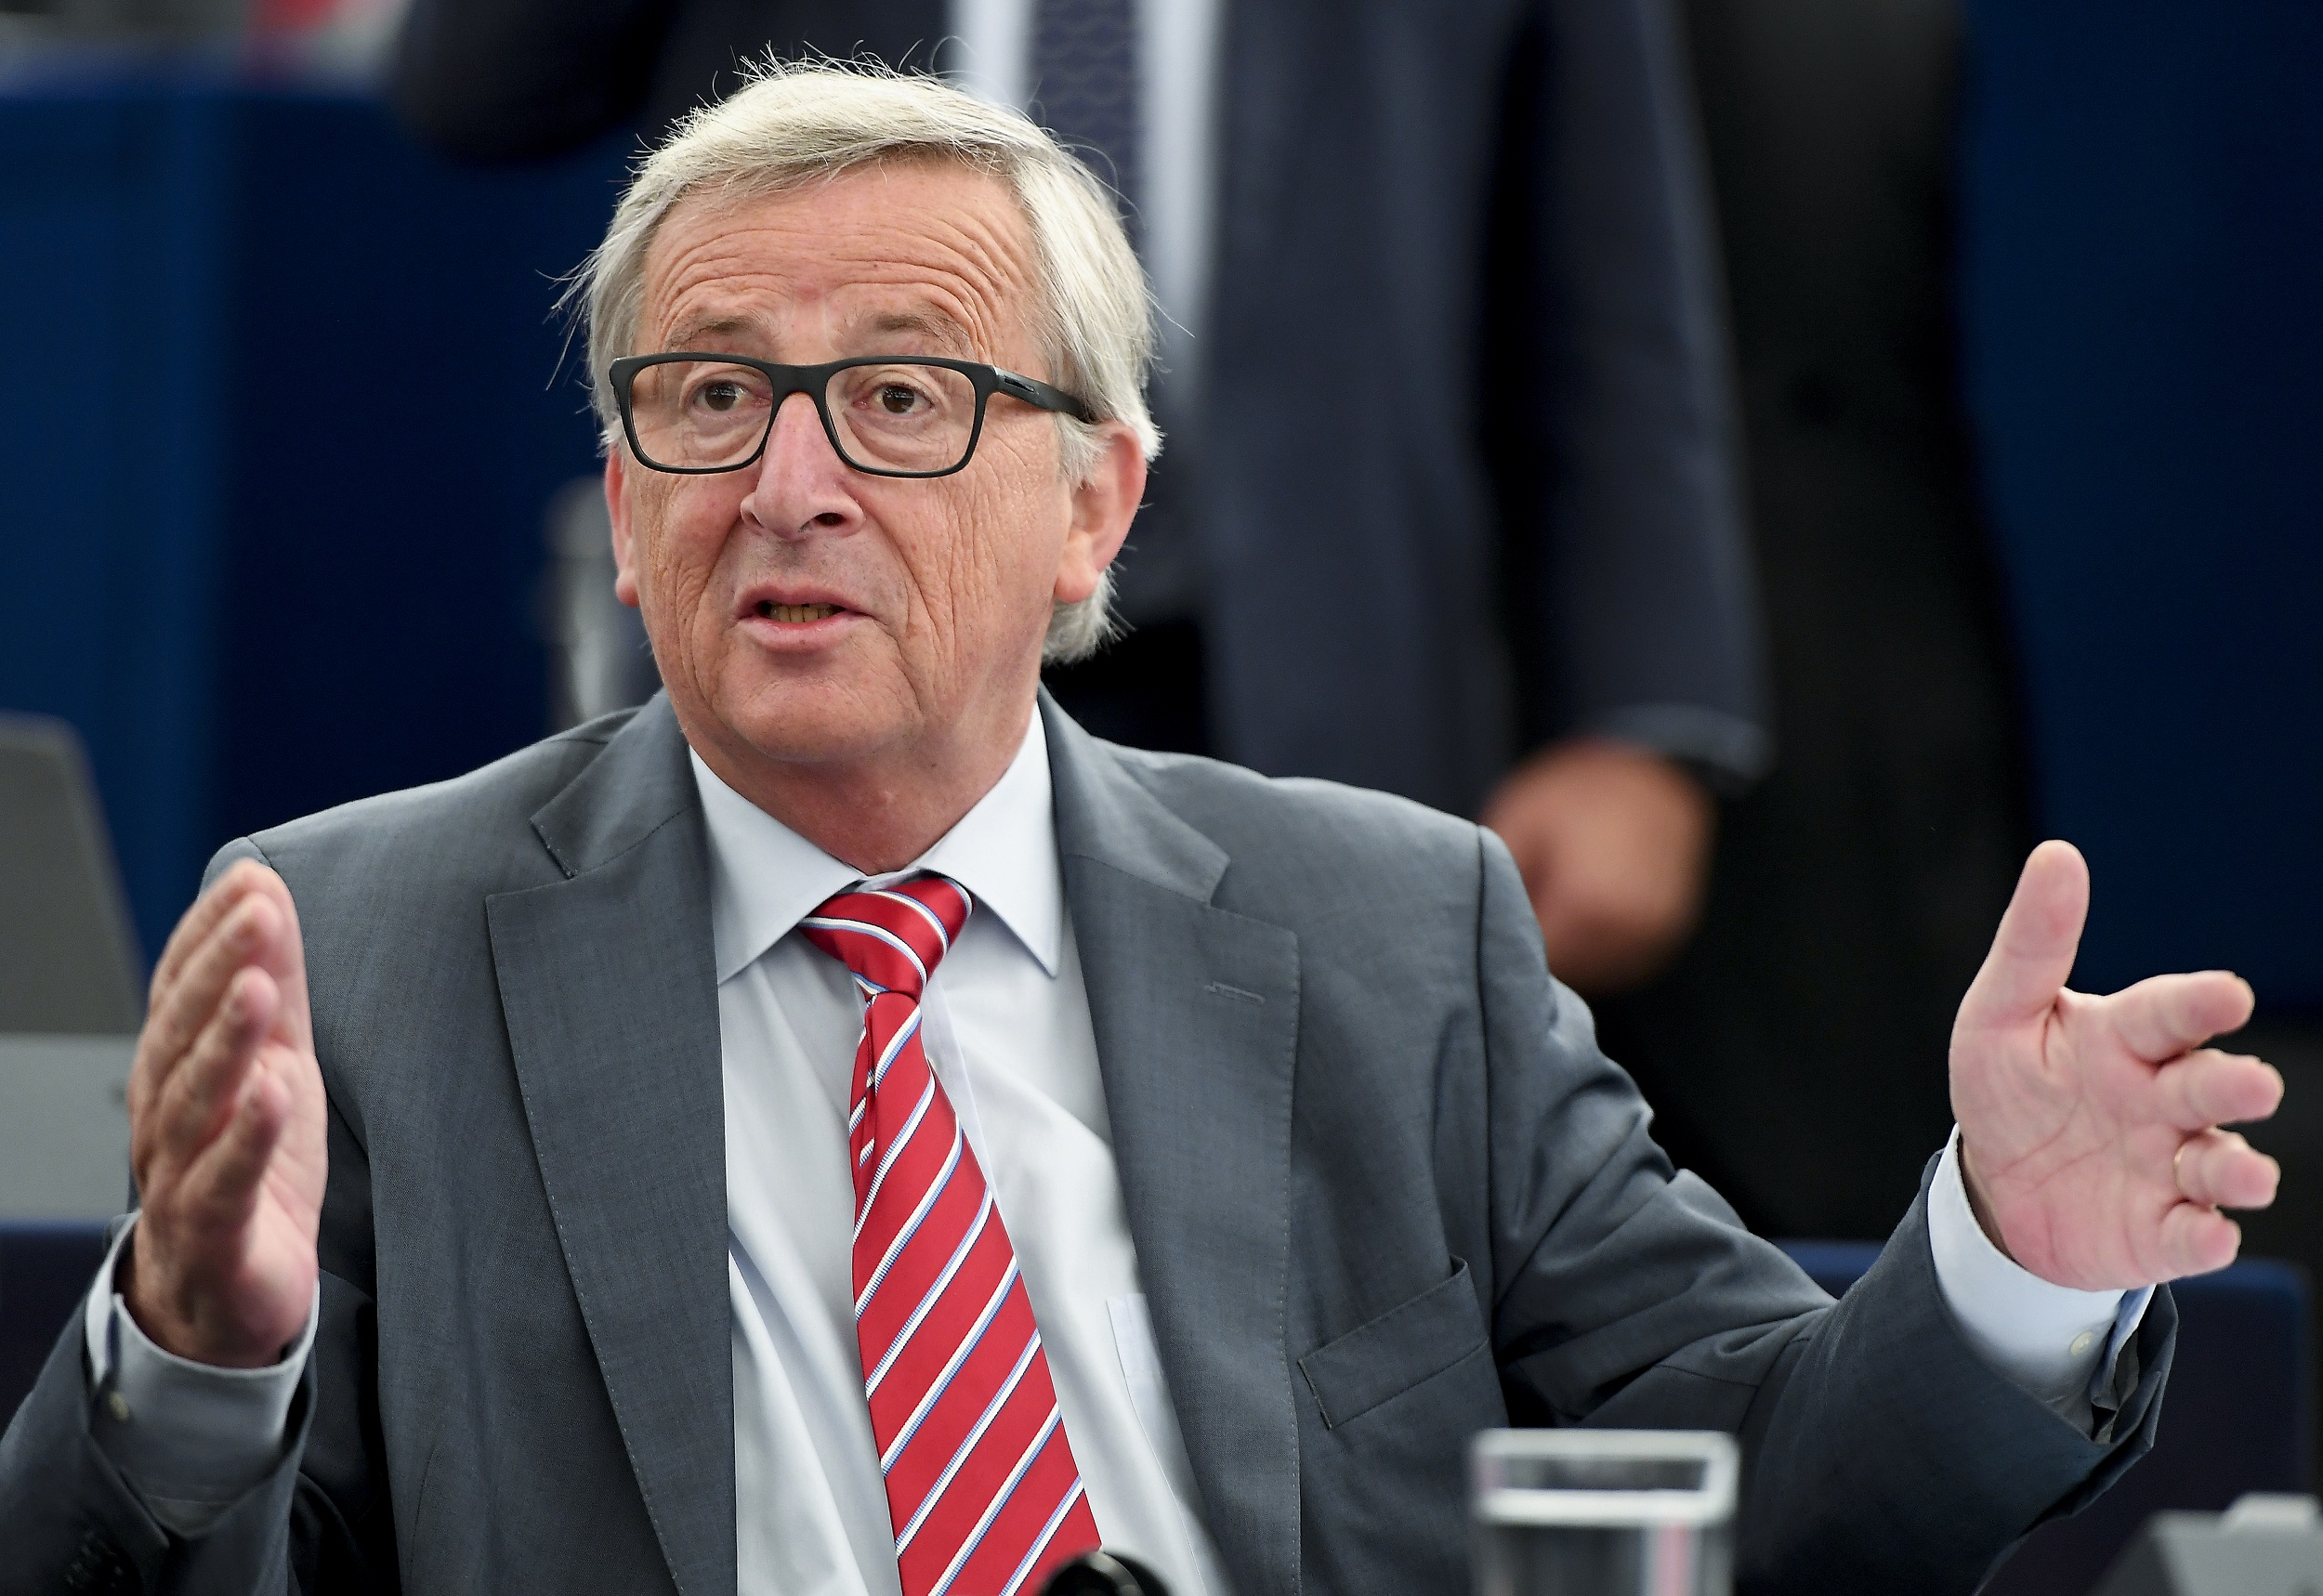 WEB_PHOTO_Jean-Claude_Juncker_14062017